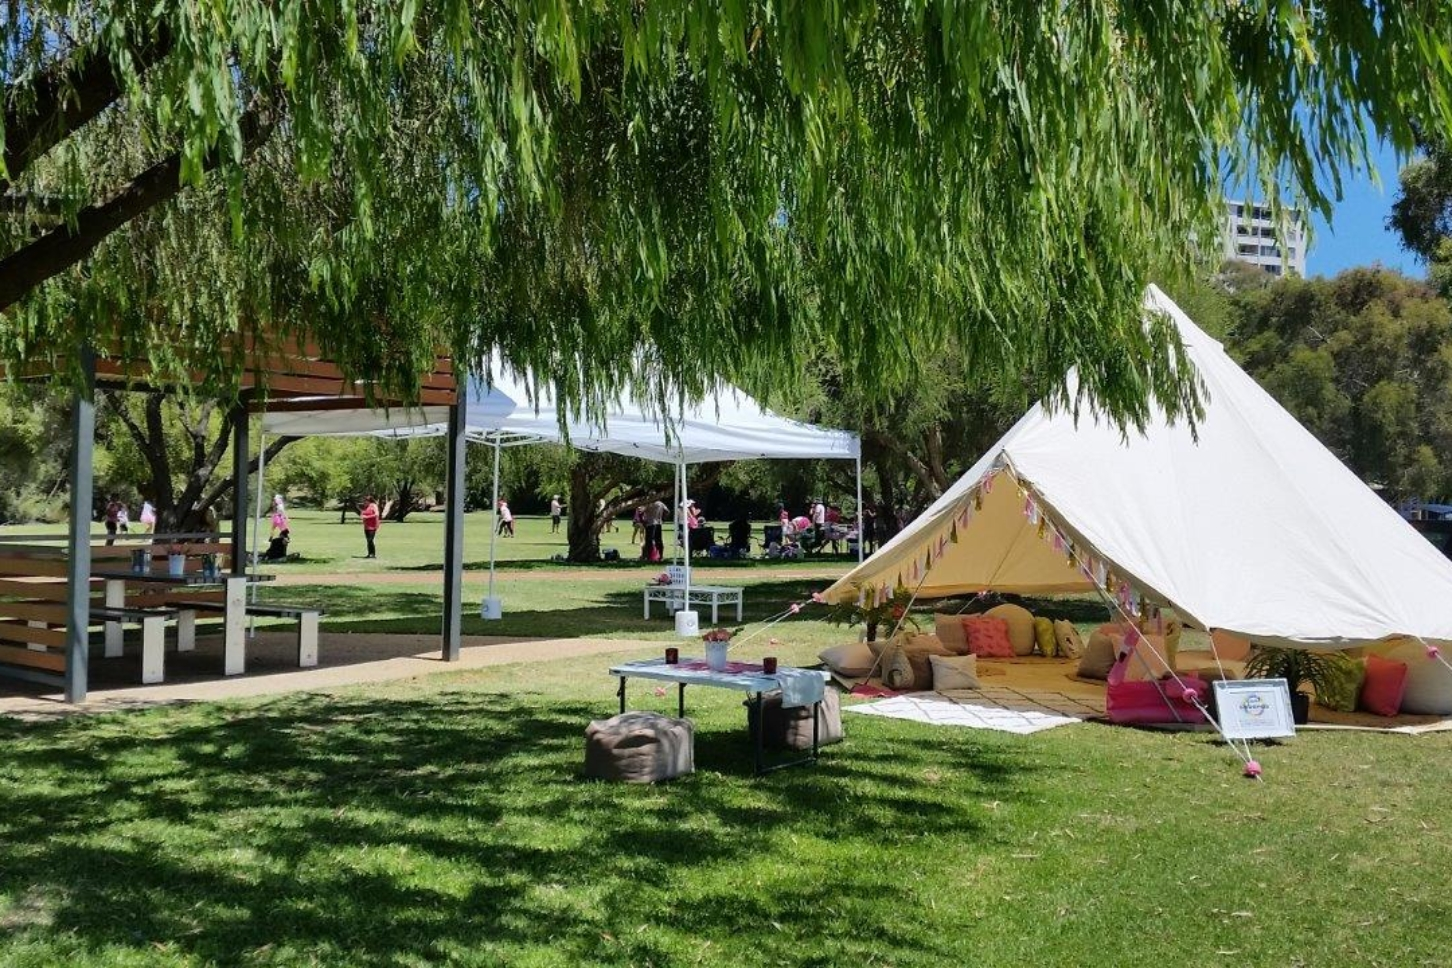 Main navigation & Cool Cabanas Glamping offers Luxury Camping in Beautiful Bell Tents